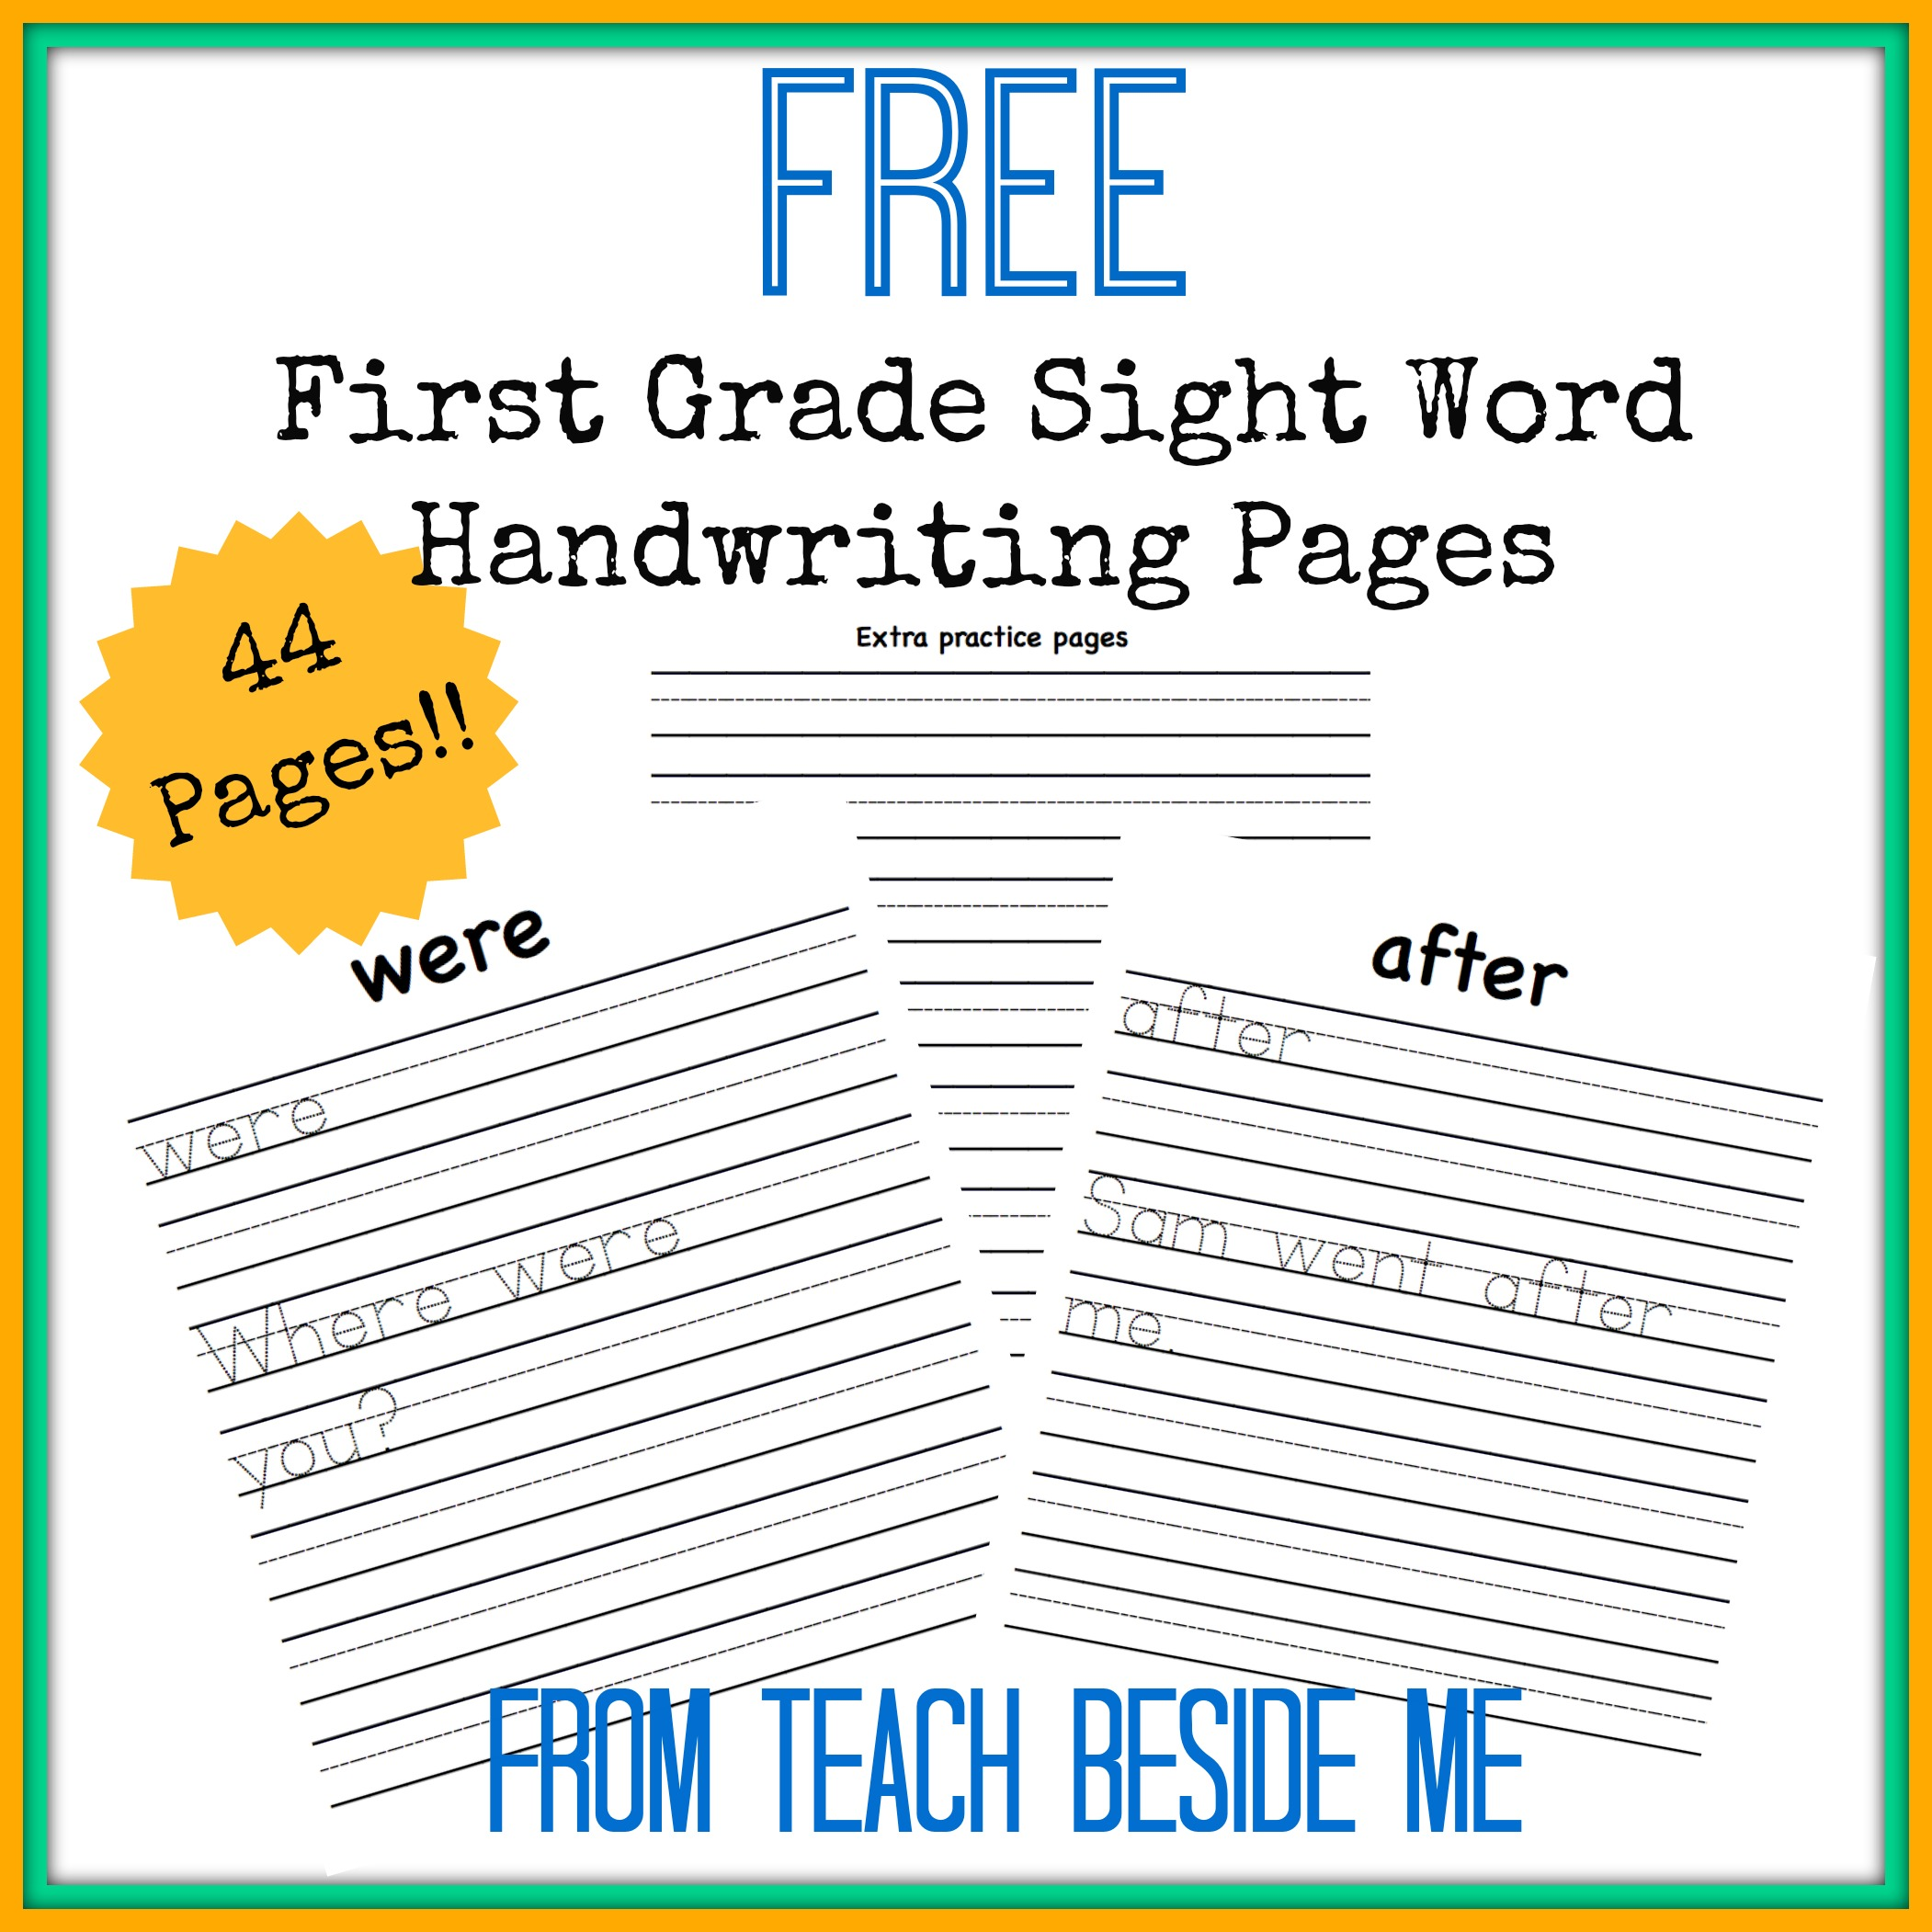 Free First Grade Sight Word Handwriting Pages